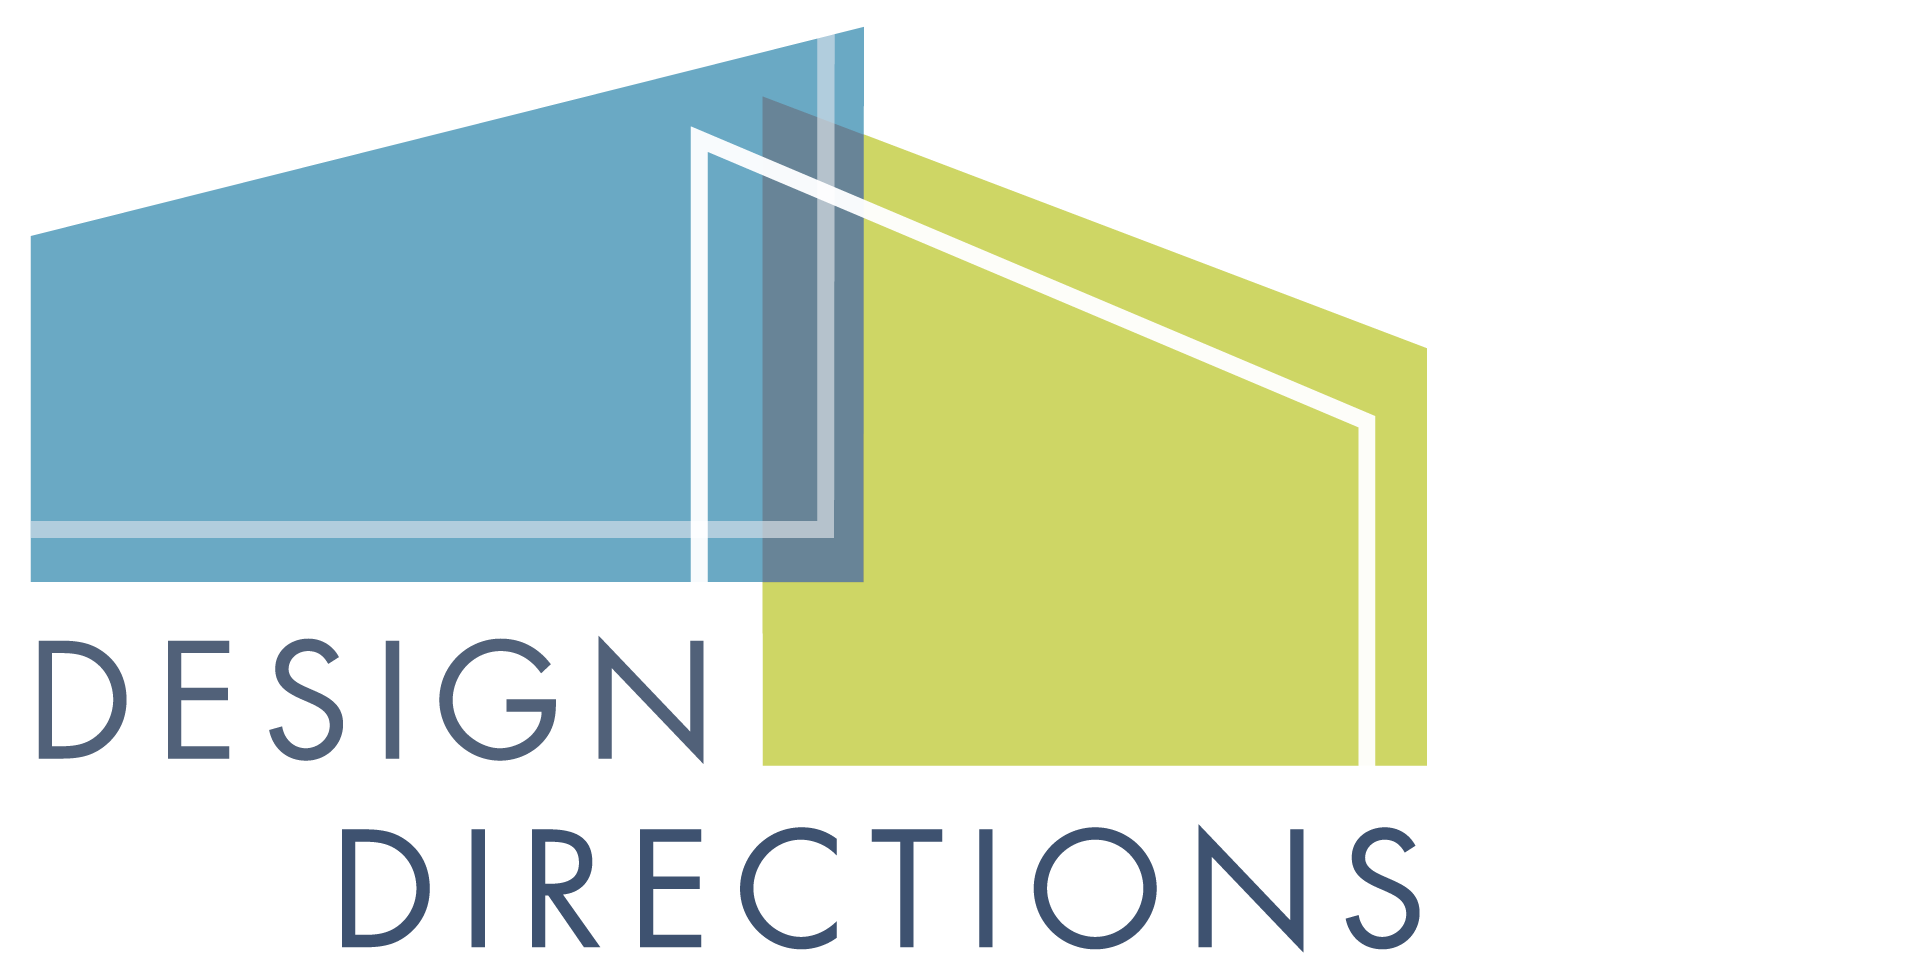 Home Design Directions